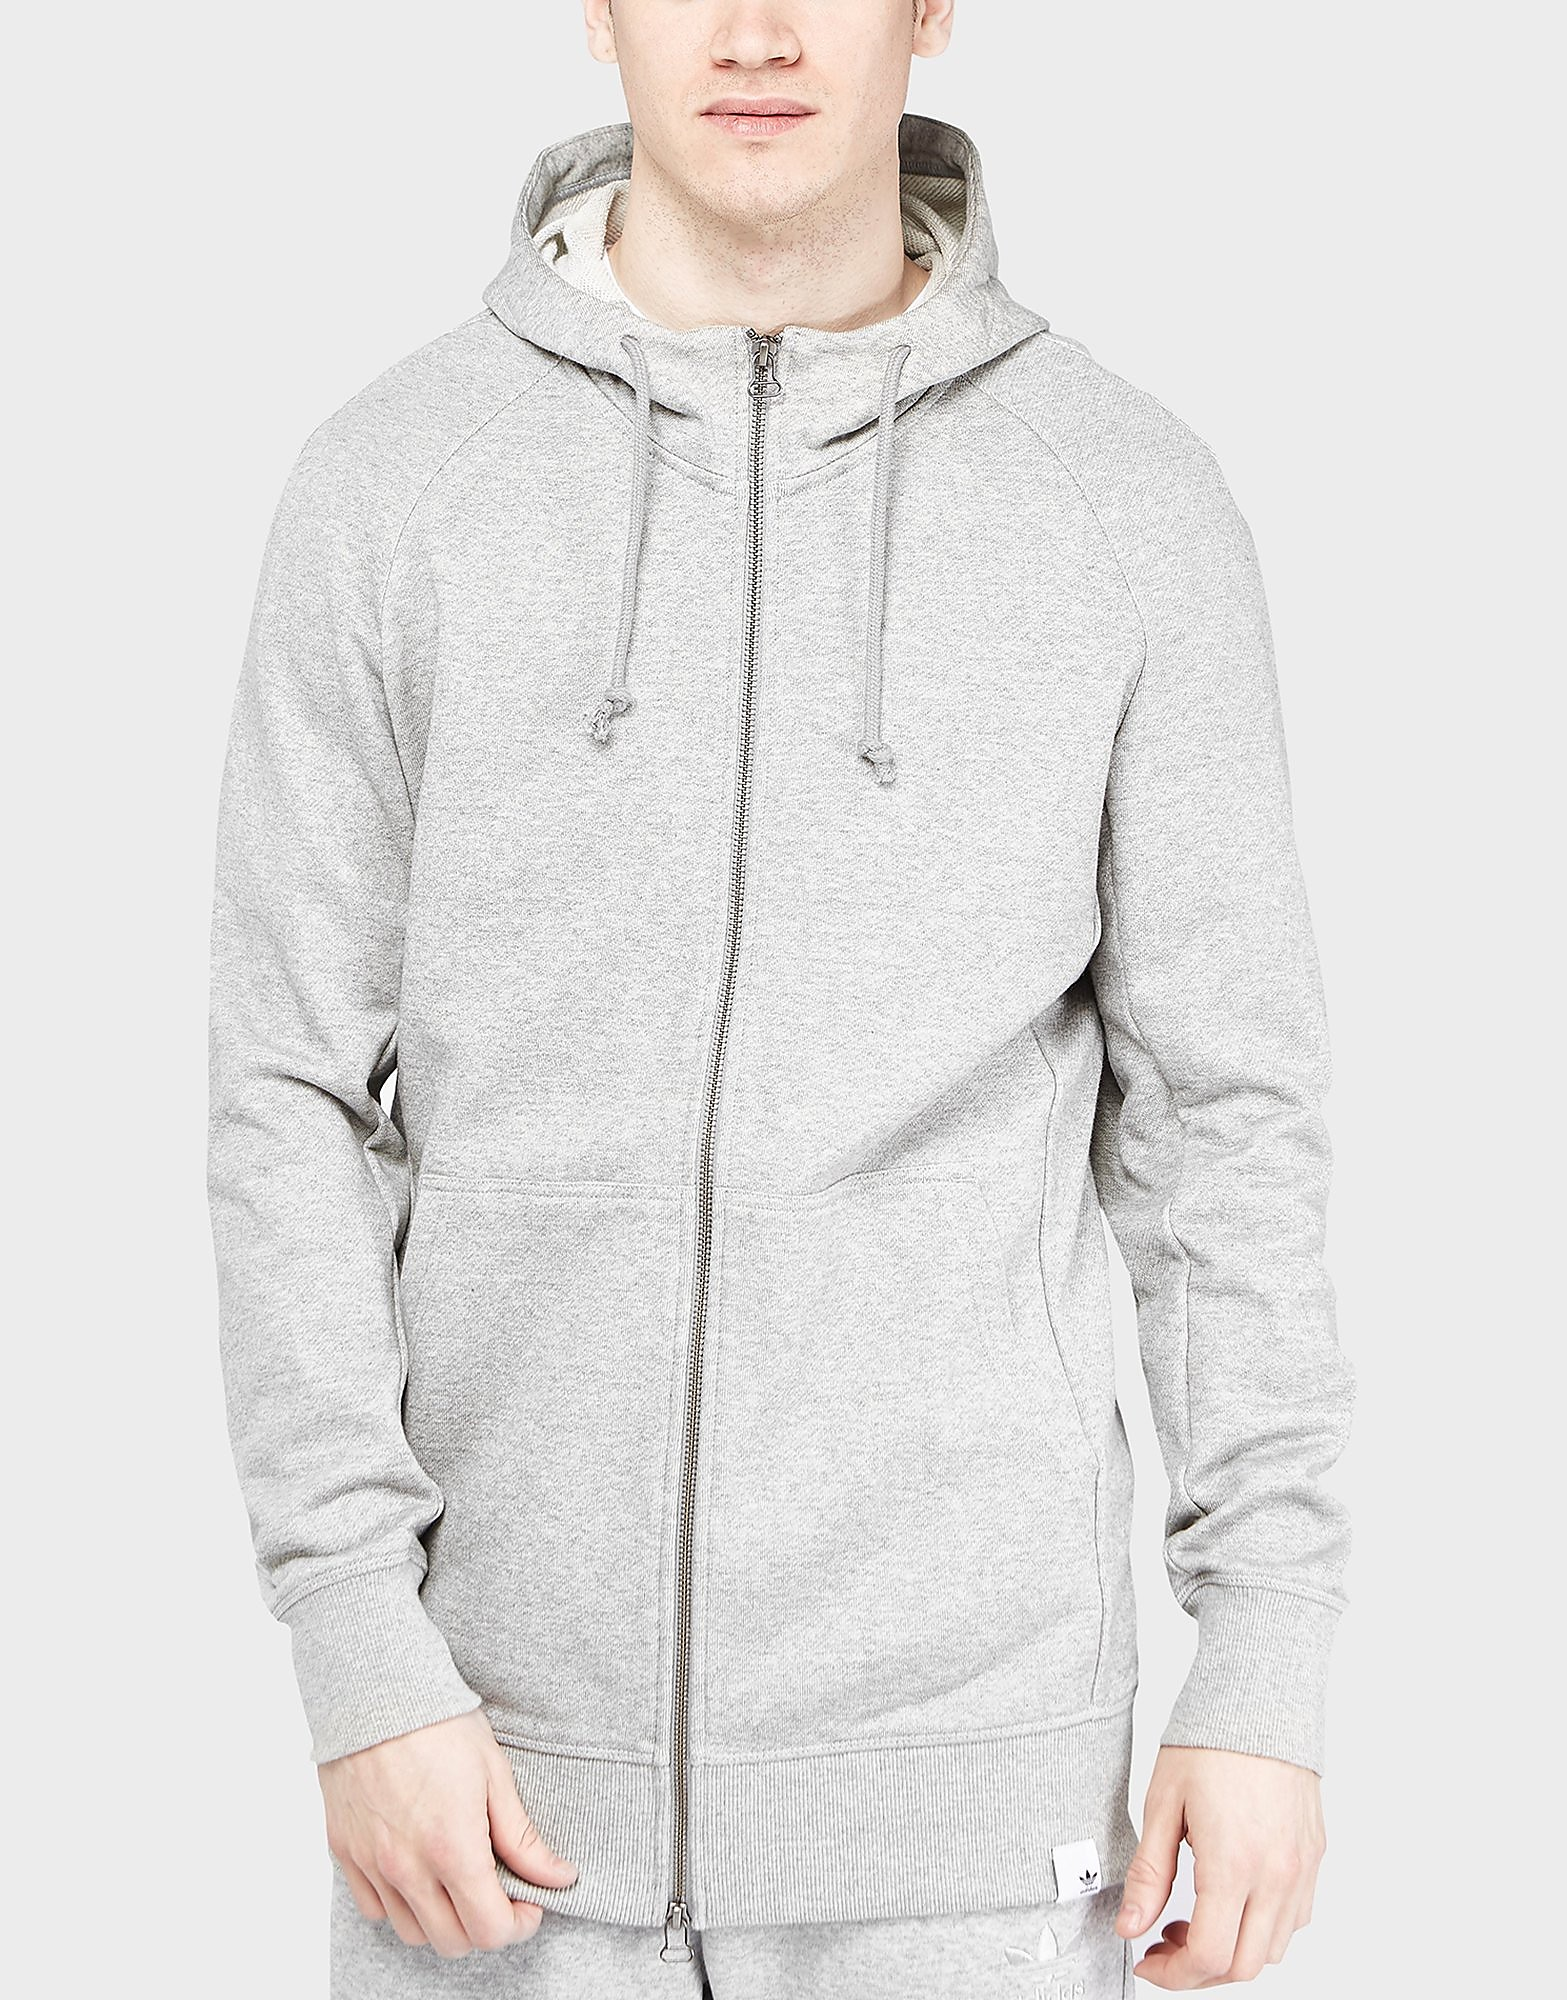 adidas Originals XBYO Full-Zip Hoody